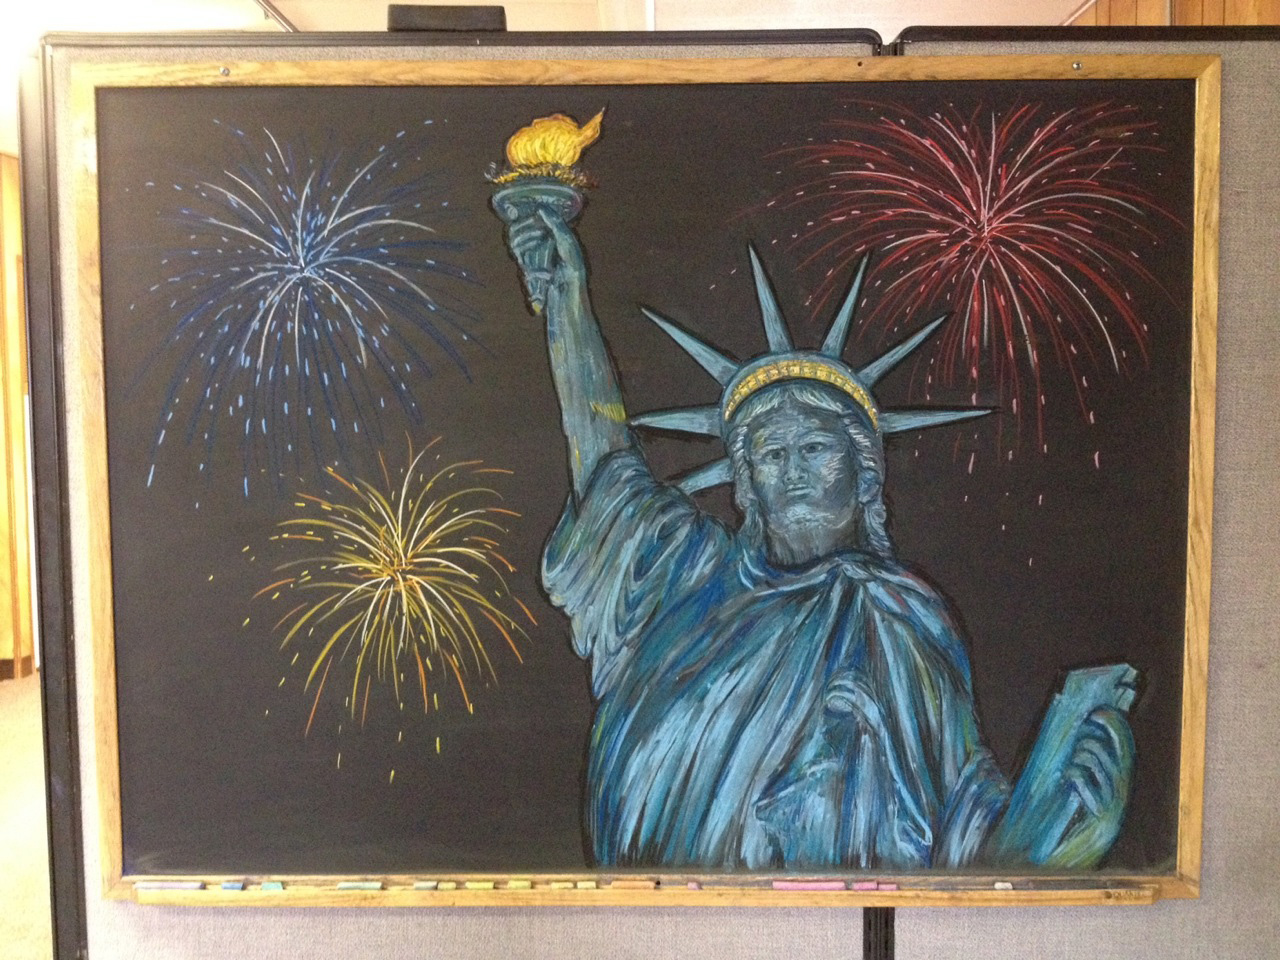 Throwing back to Independence Day 2014, for which Julie Vander Meulen created this drawing. Photo: Julie Vander Meulen